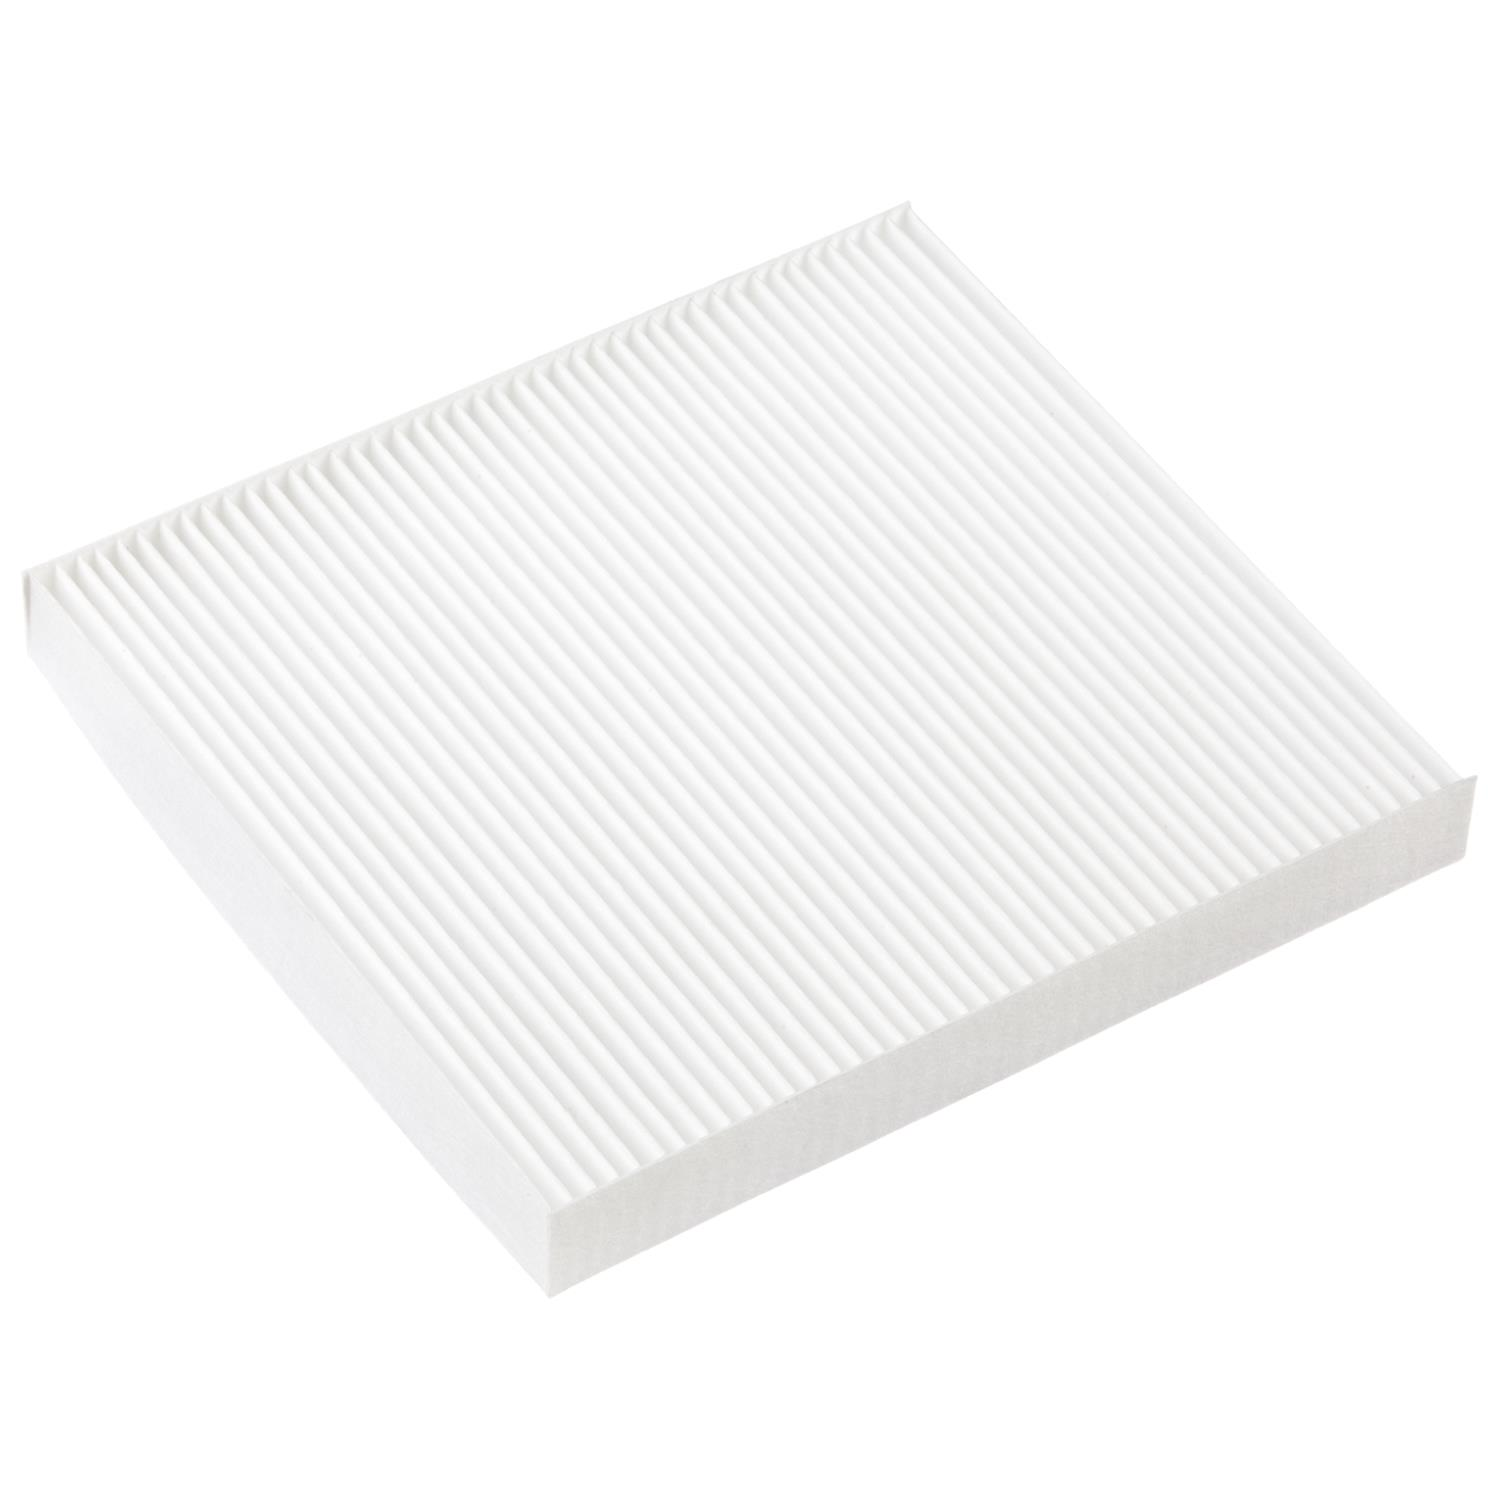 Atp Automotive Cf 244 Replacement Cabin Filter